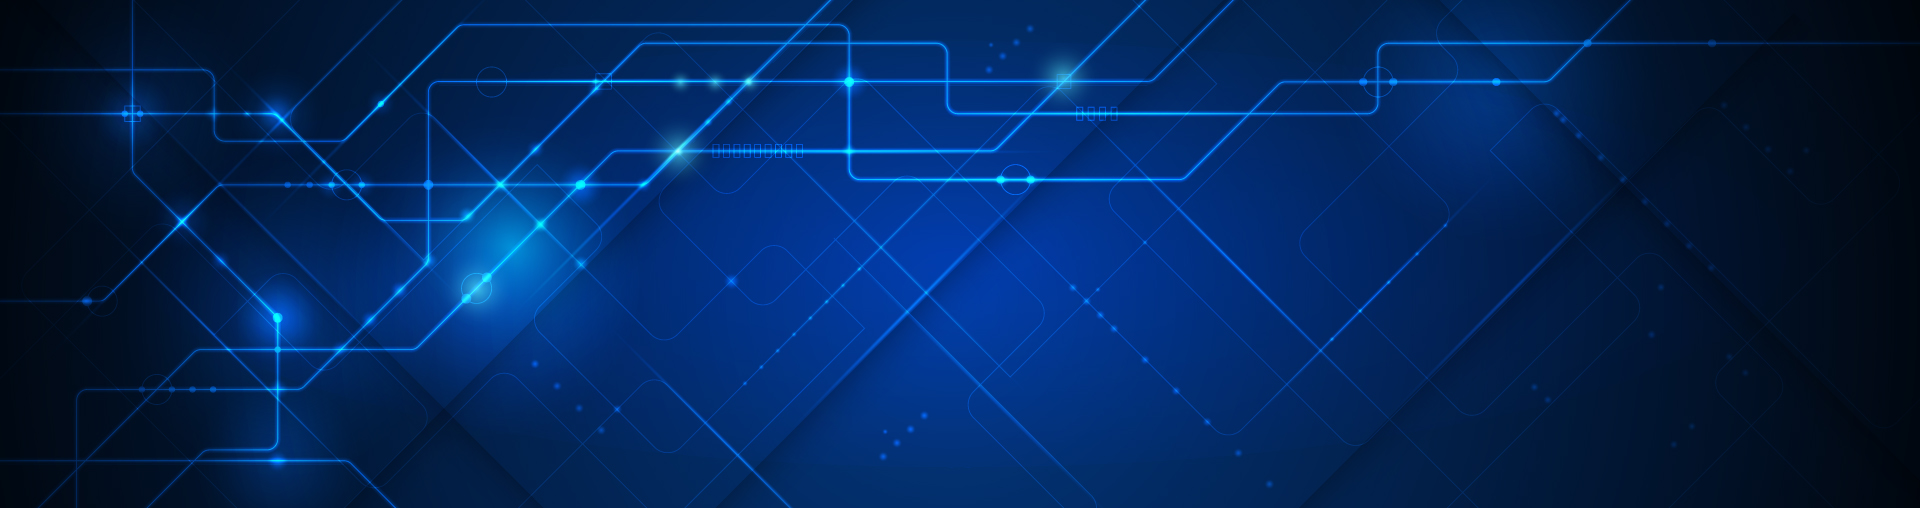 Blue-Abstract-Technology-Background